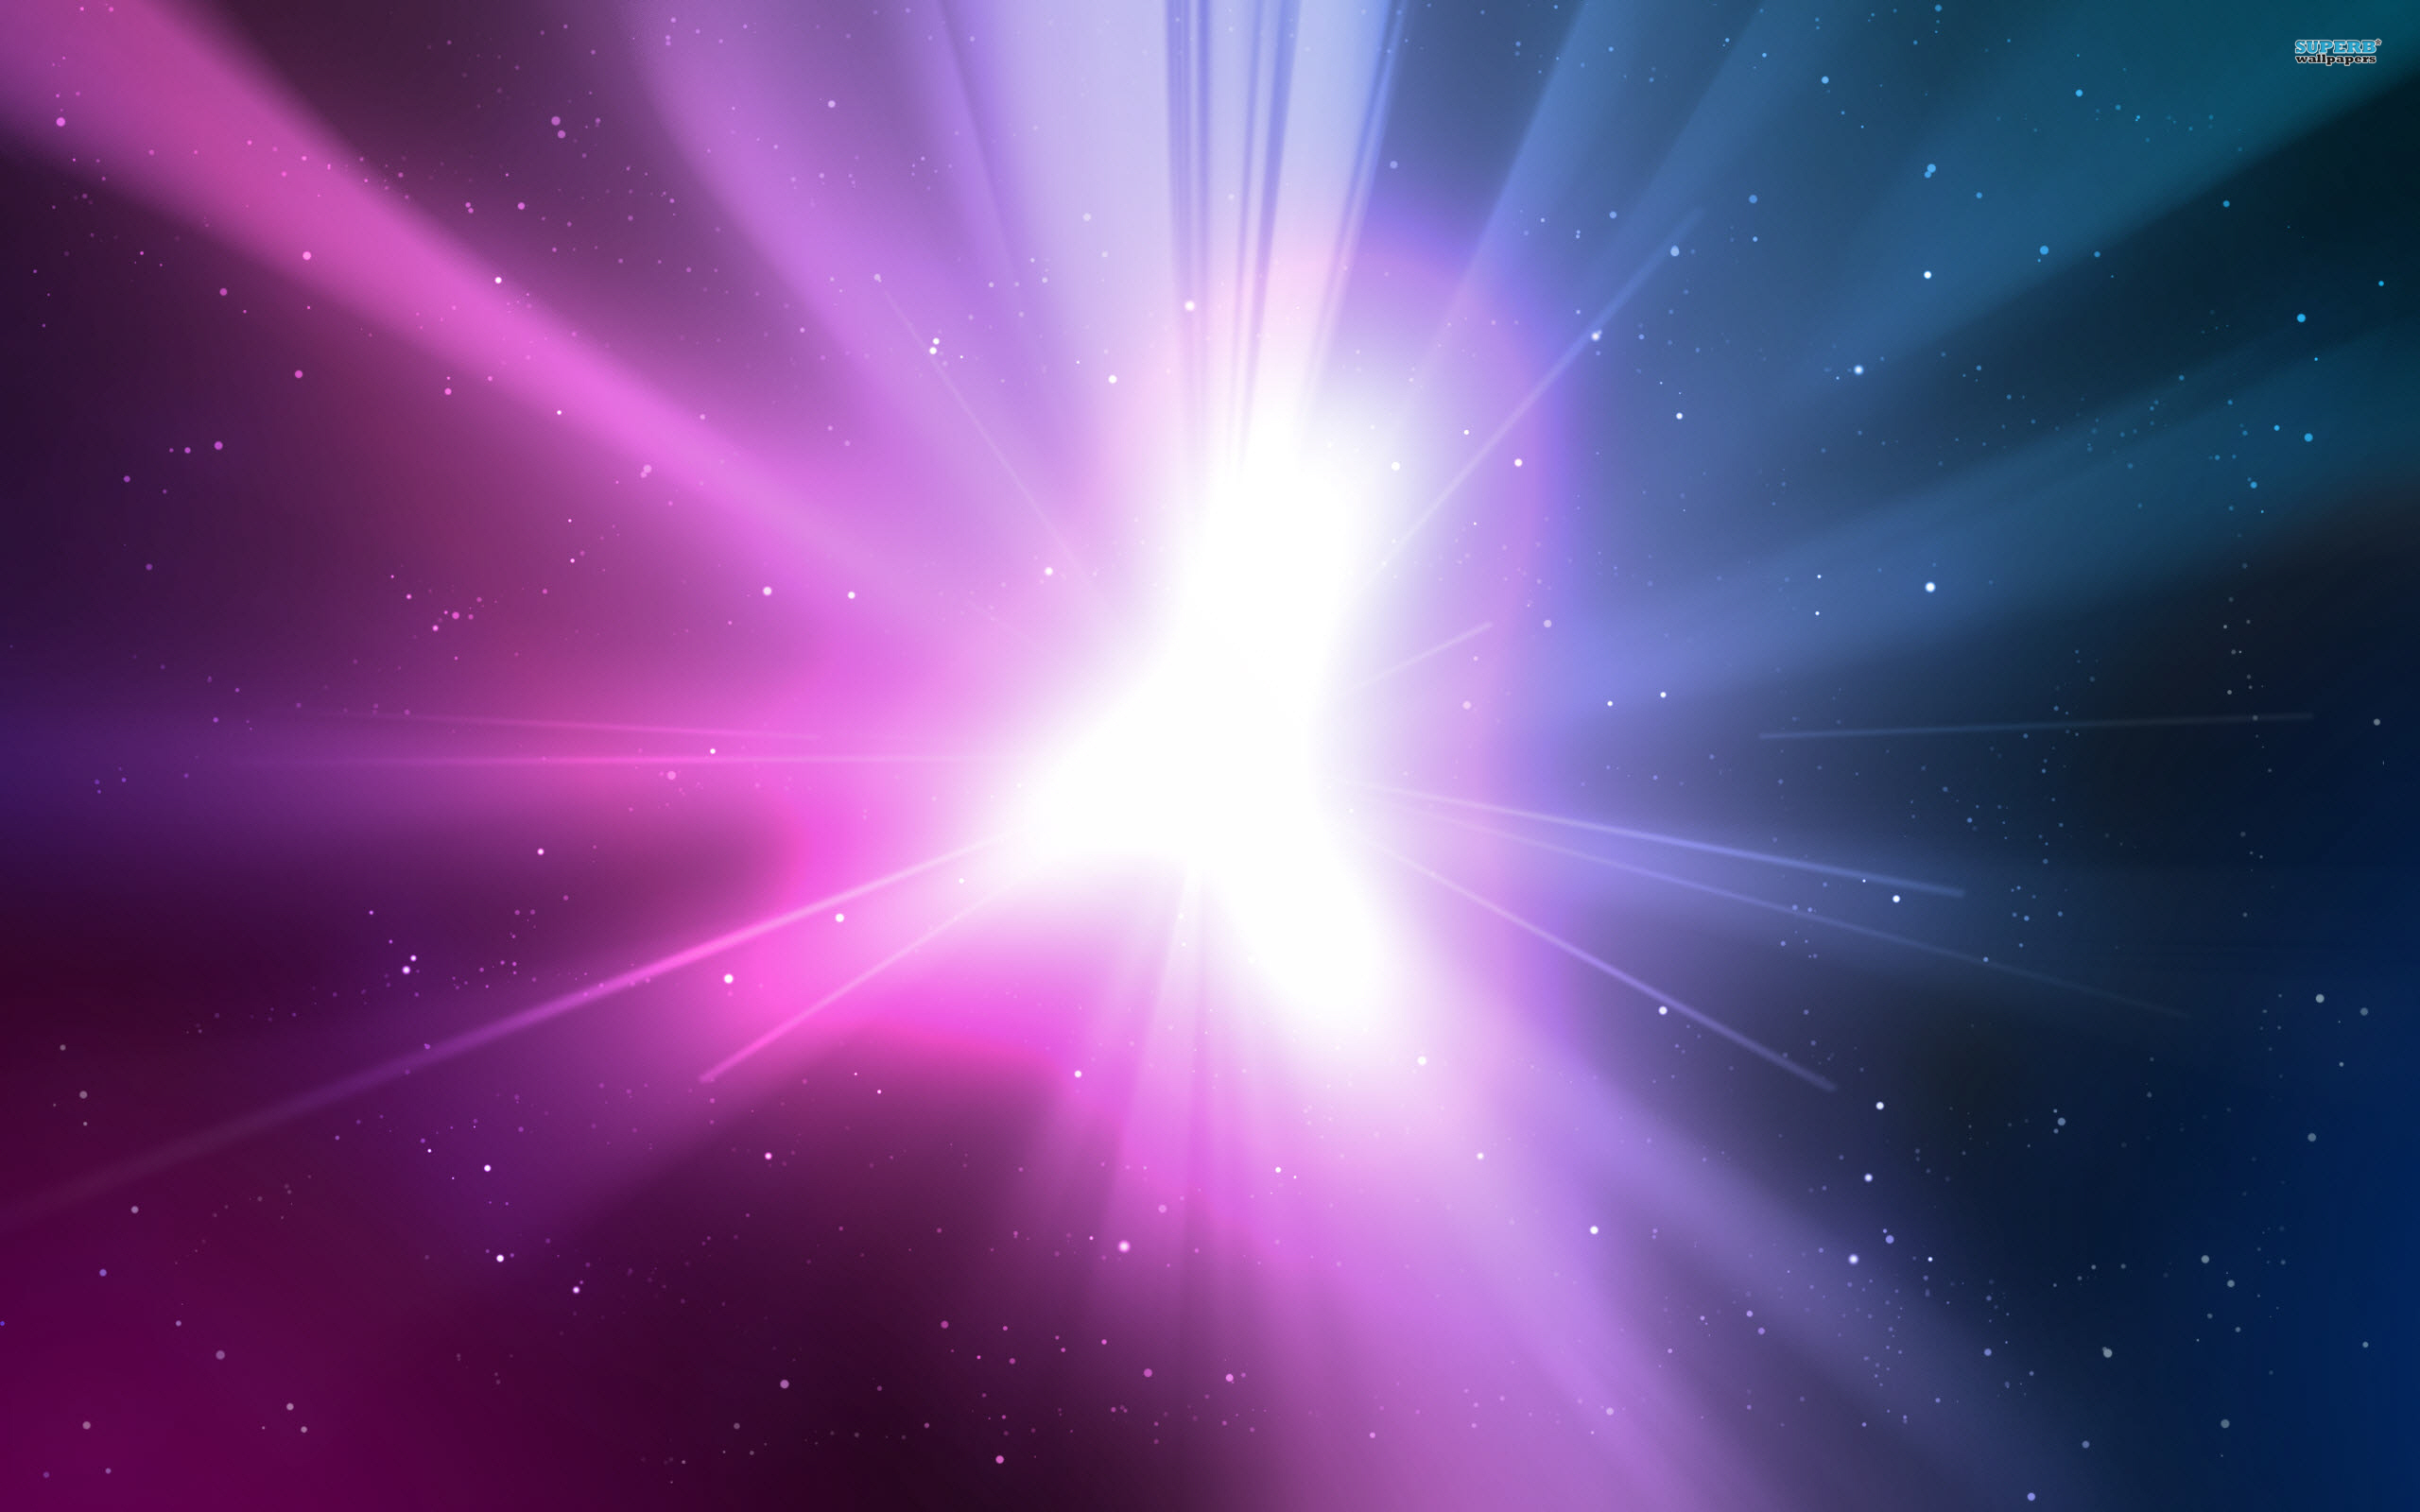 Light Source wallpaper 2560x1600